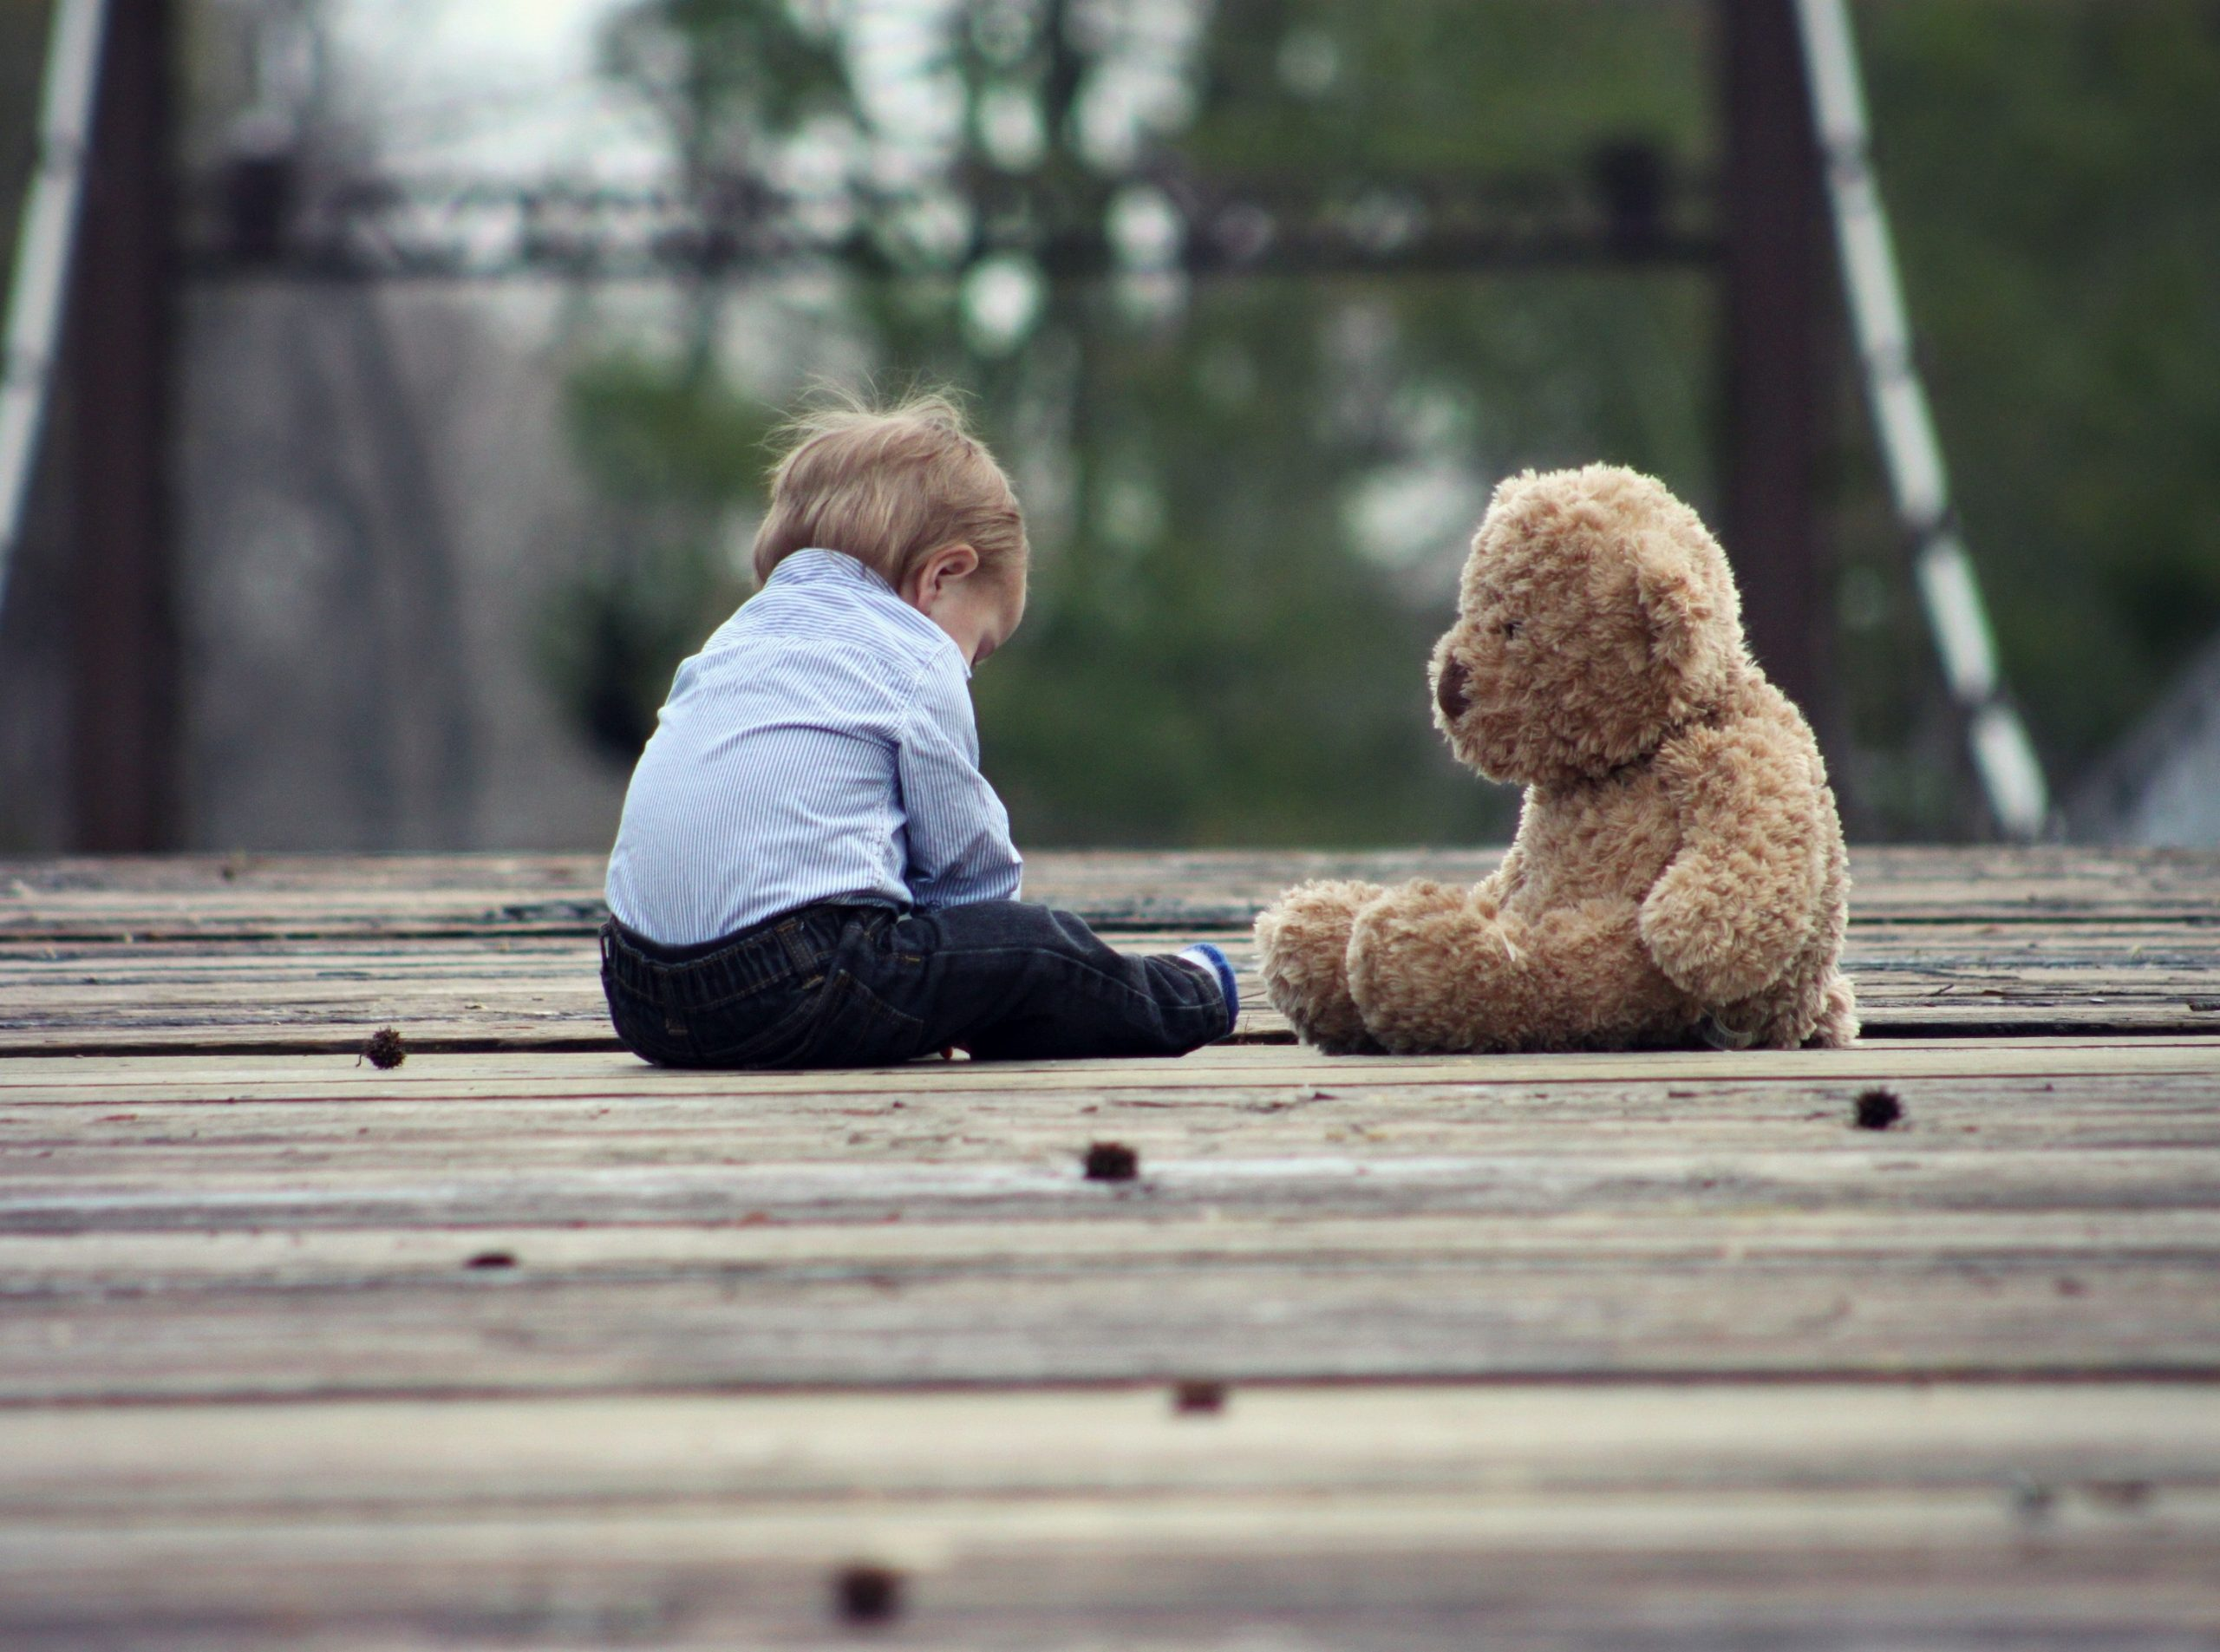 Back view of a young child affected by trauma sitting on decking with giant teddy bear.